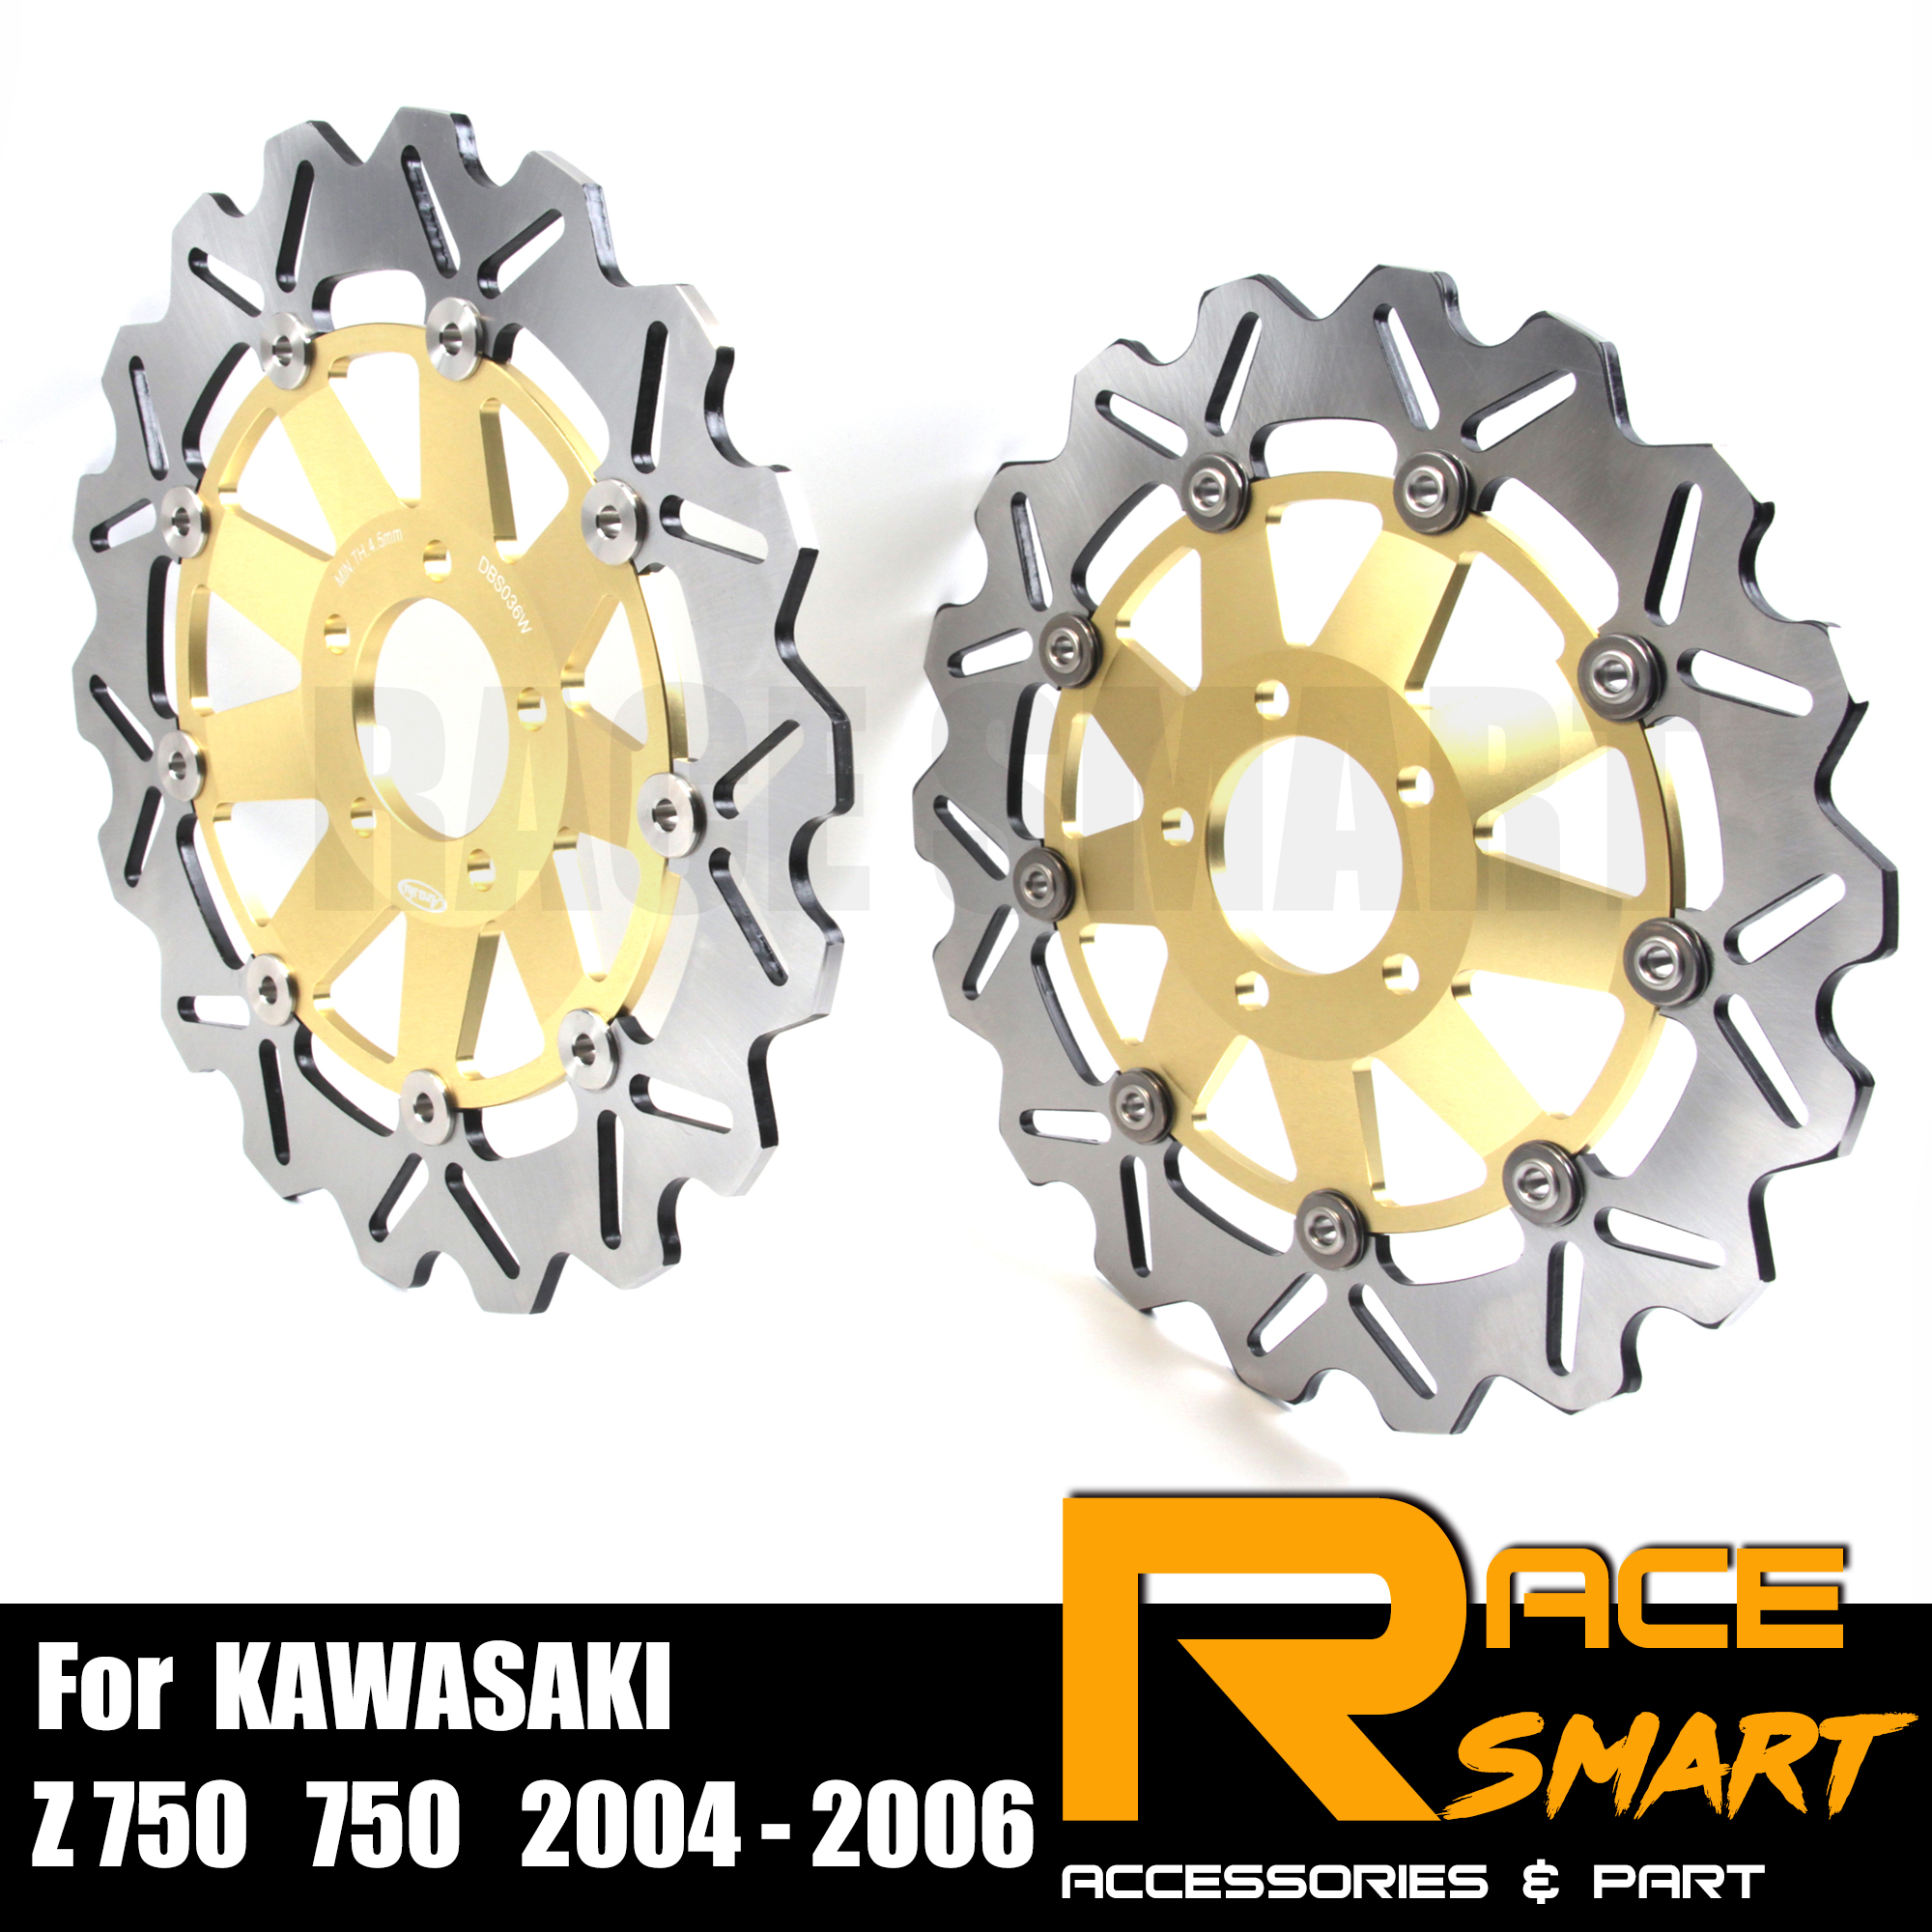 For <font><b>KAWASAKI</b></font> <font><b>Z750</b></font> 2004 - 2006 Motorcycle CNC Front <font><b>Brake</b></font> Disks <font><b>Discs</b></font> Stainless Steel <font><b>Brake</b></font> Rotor Z-750 <font><b>Z750</b></font> S750 2005 2006 S-750 image